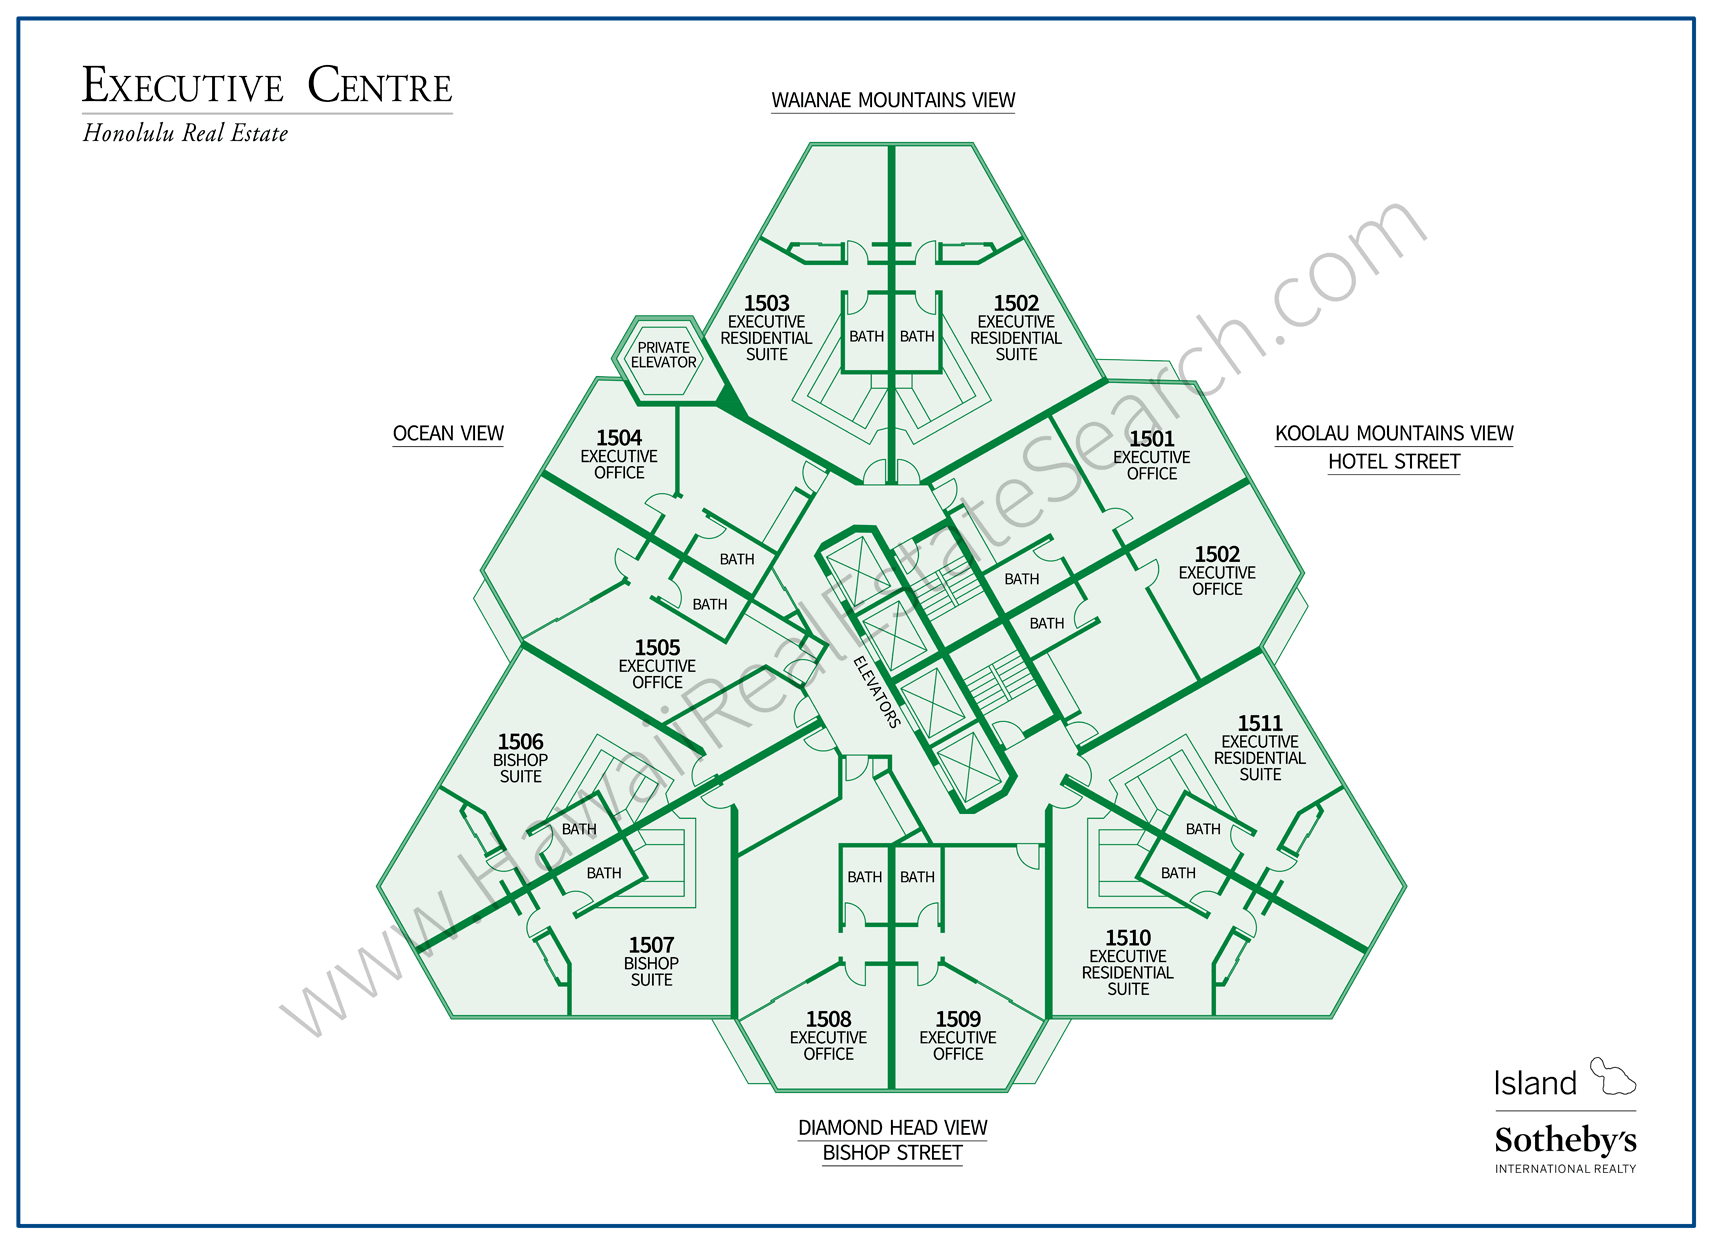 Executive Centre Map Honolulu